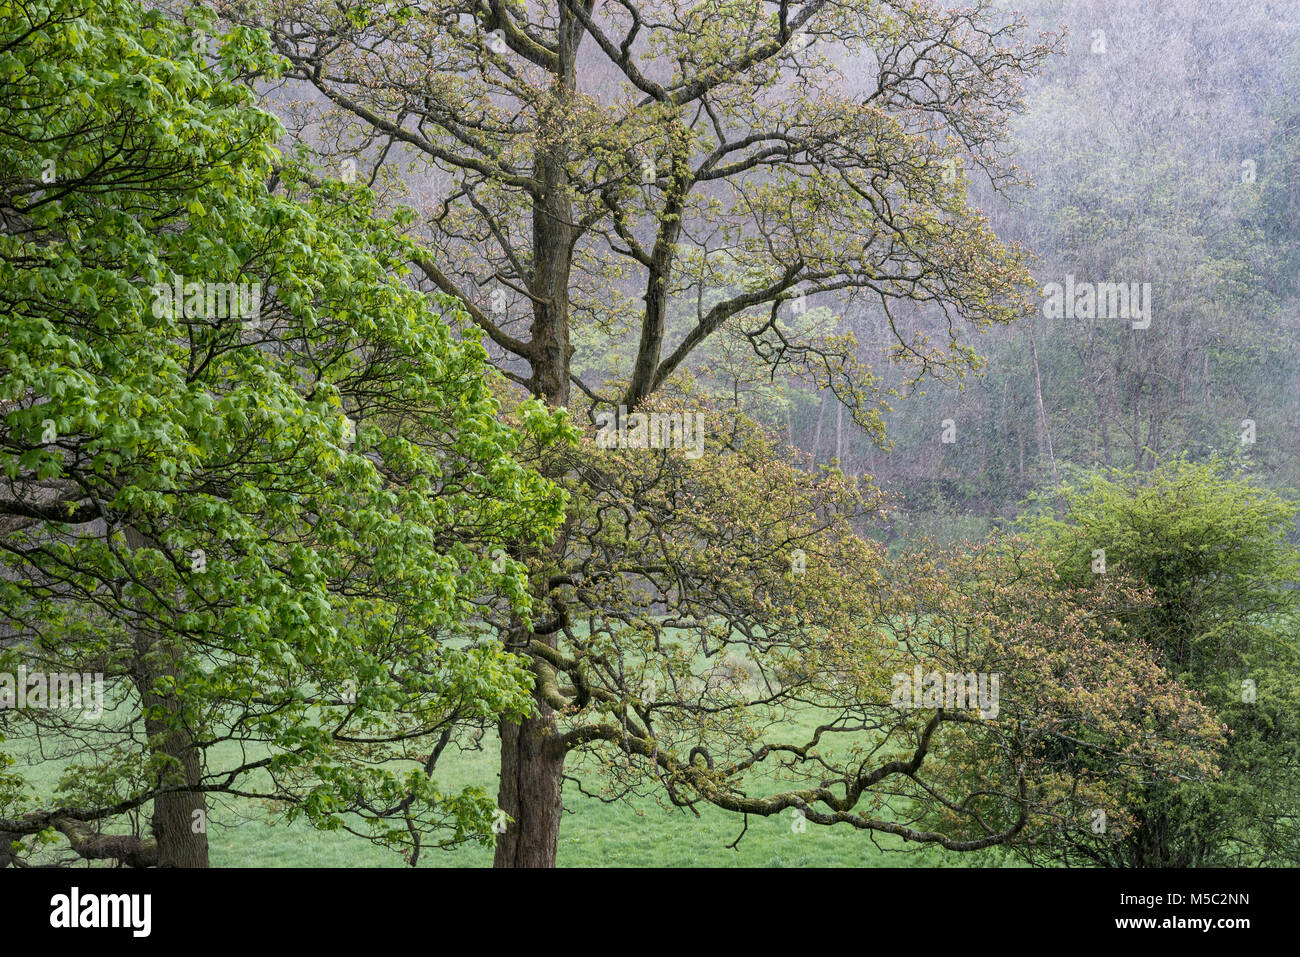 Wintry showers in mid spring landscape. Trees with new greenery on the branches. - Stock Image